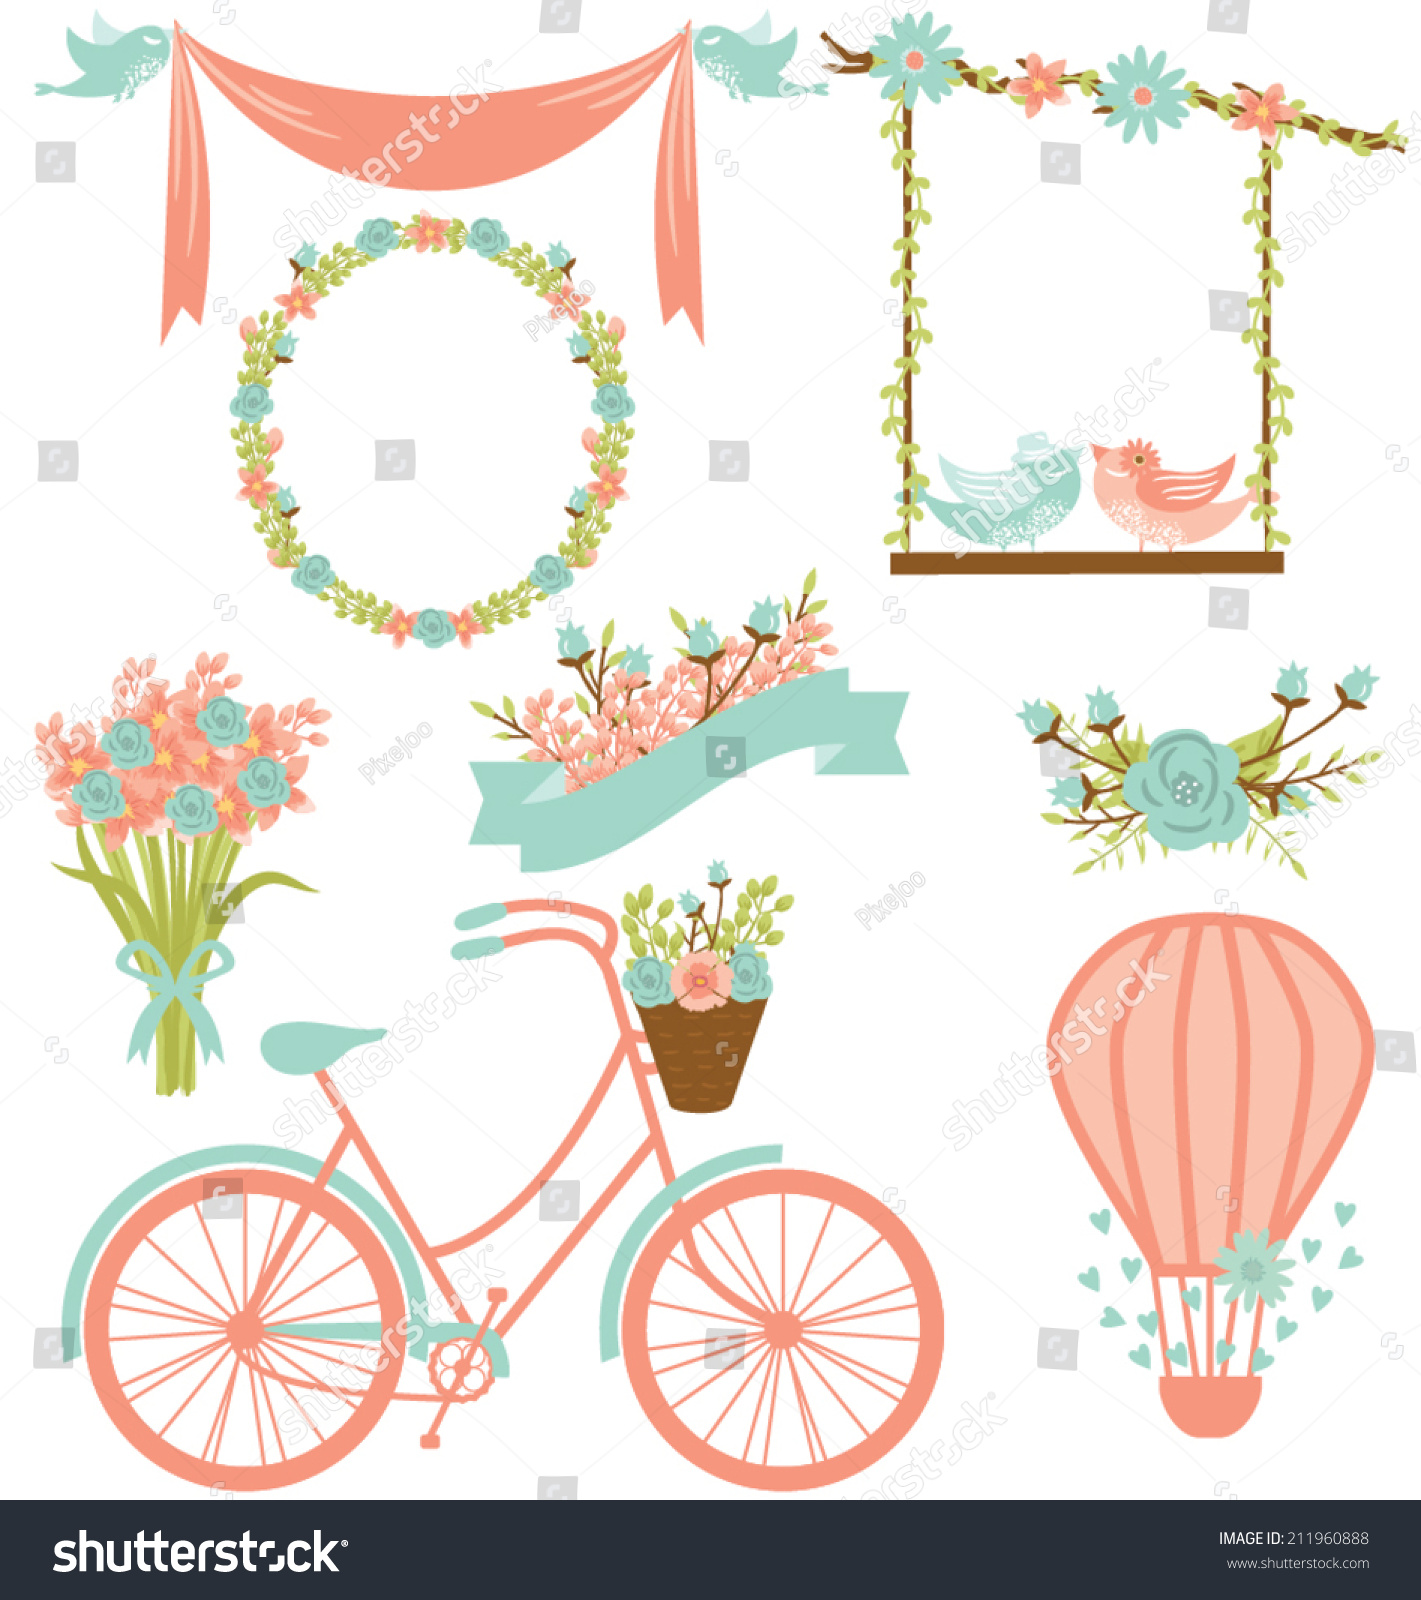 Wedding clipart vector images graphic transparent library Wedding Clipart Vector & Clip Art Images #1827 ... graphic transparent library